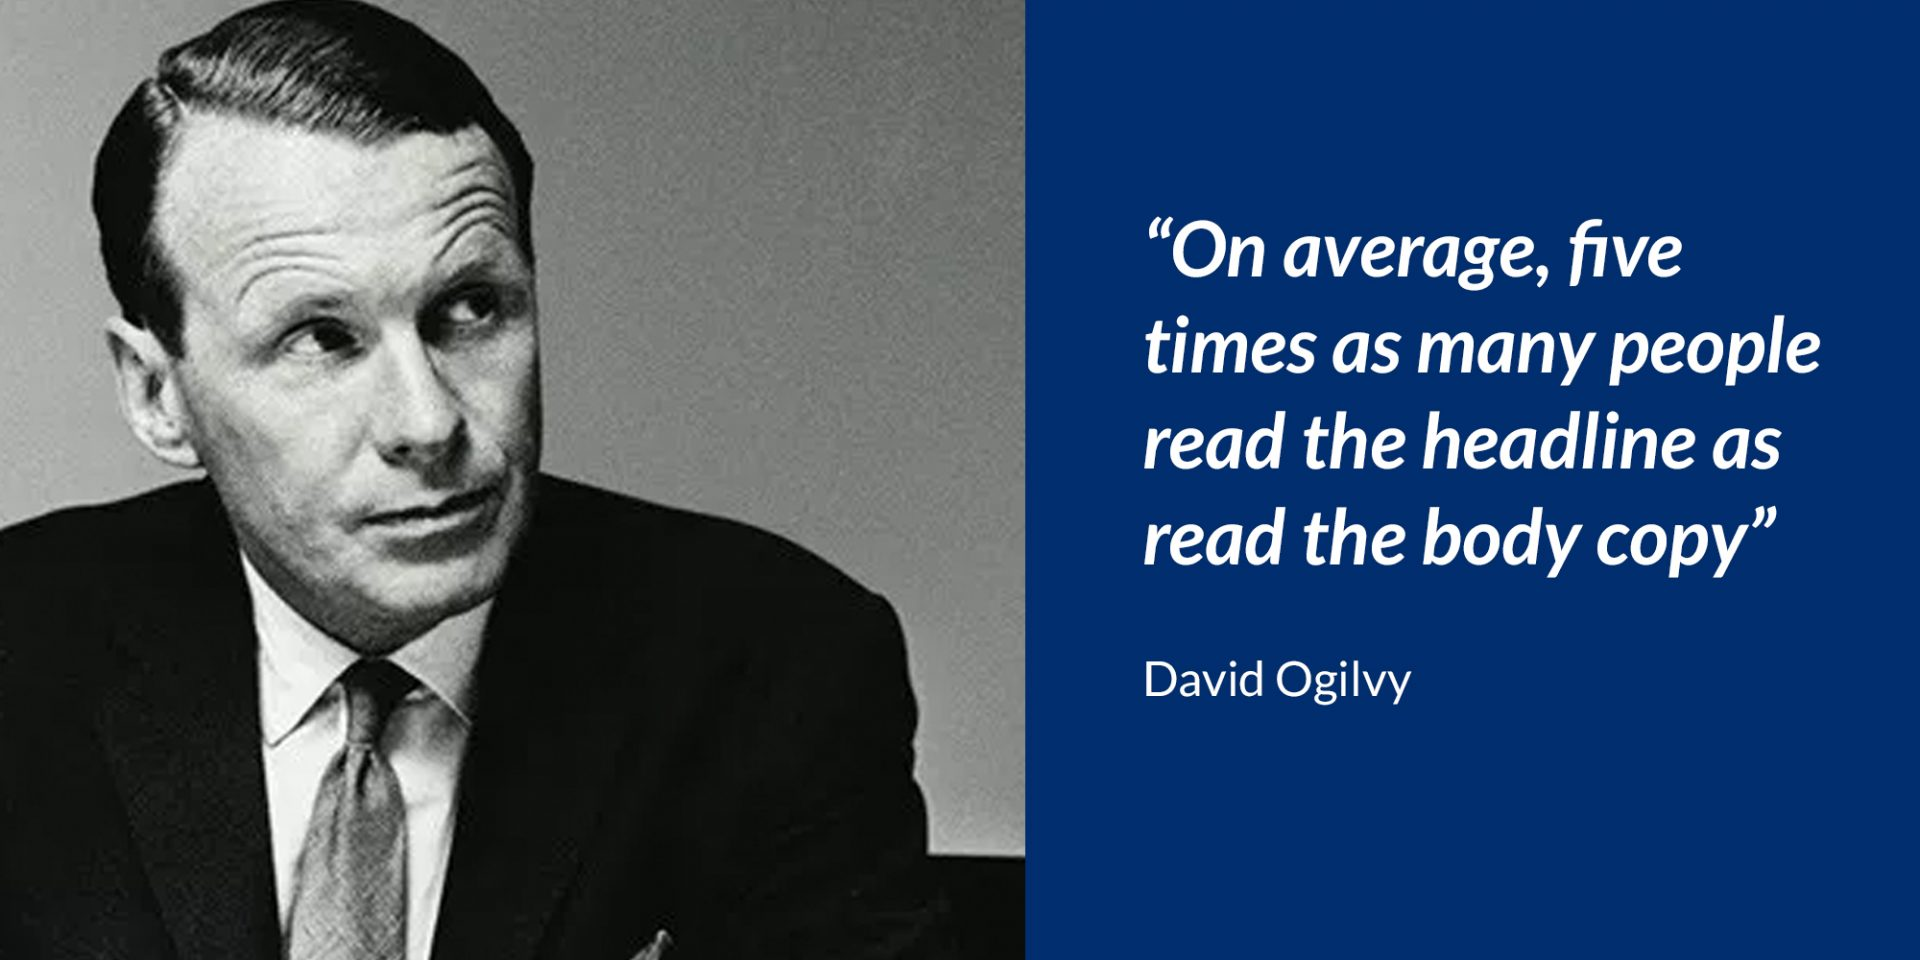 Image of David Ogilvy saying a quote of his.